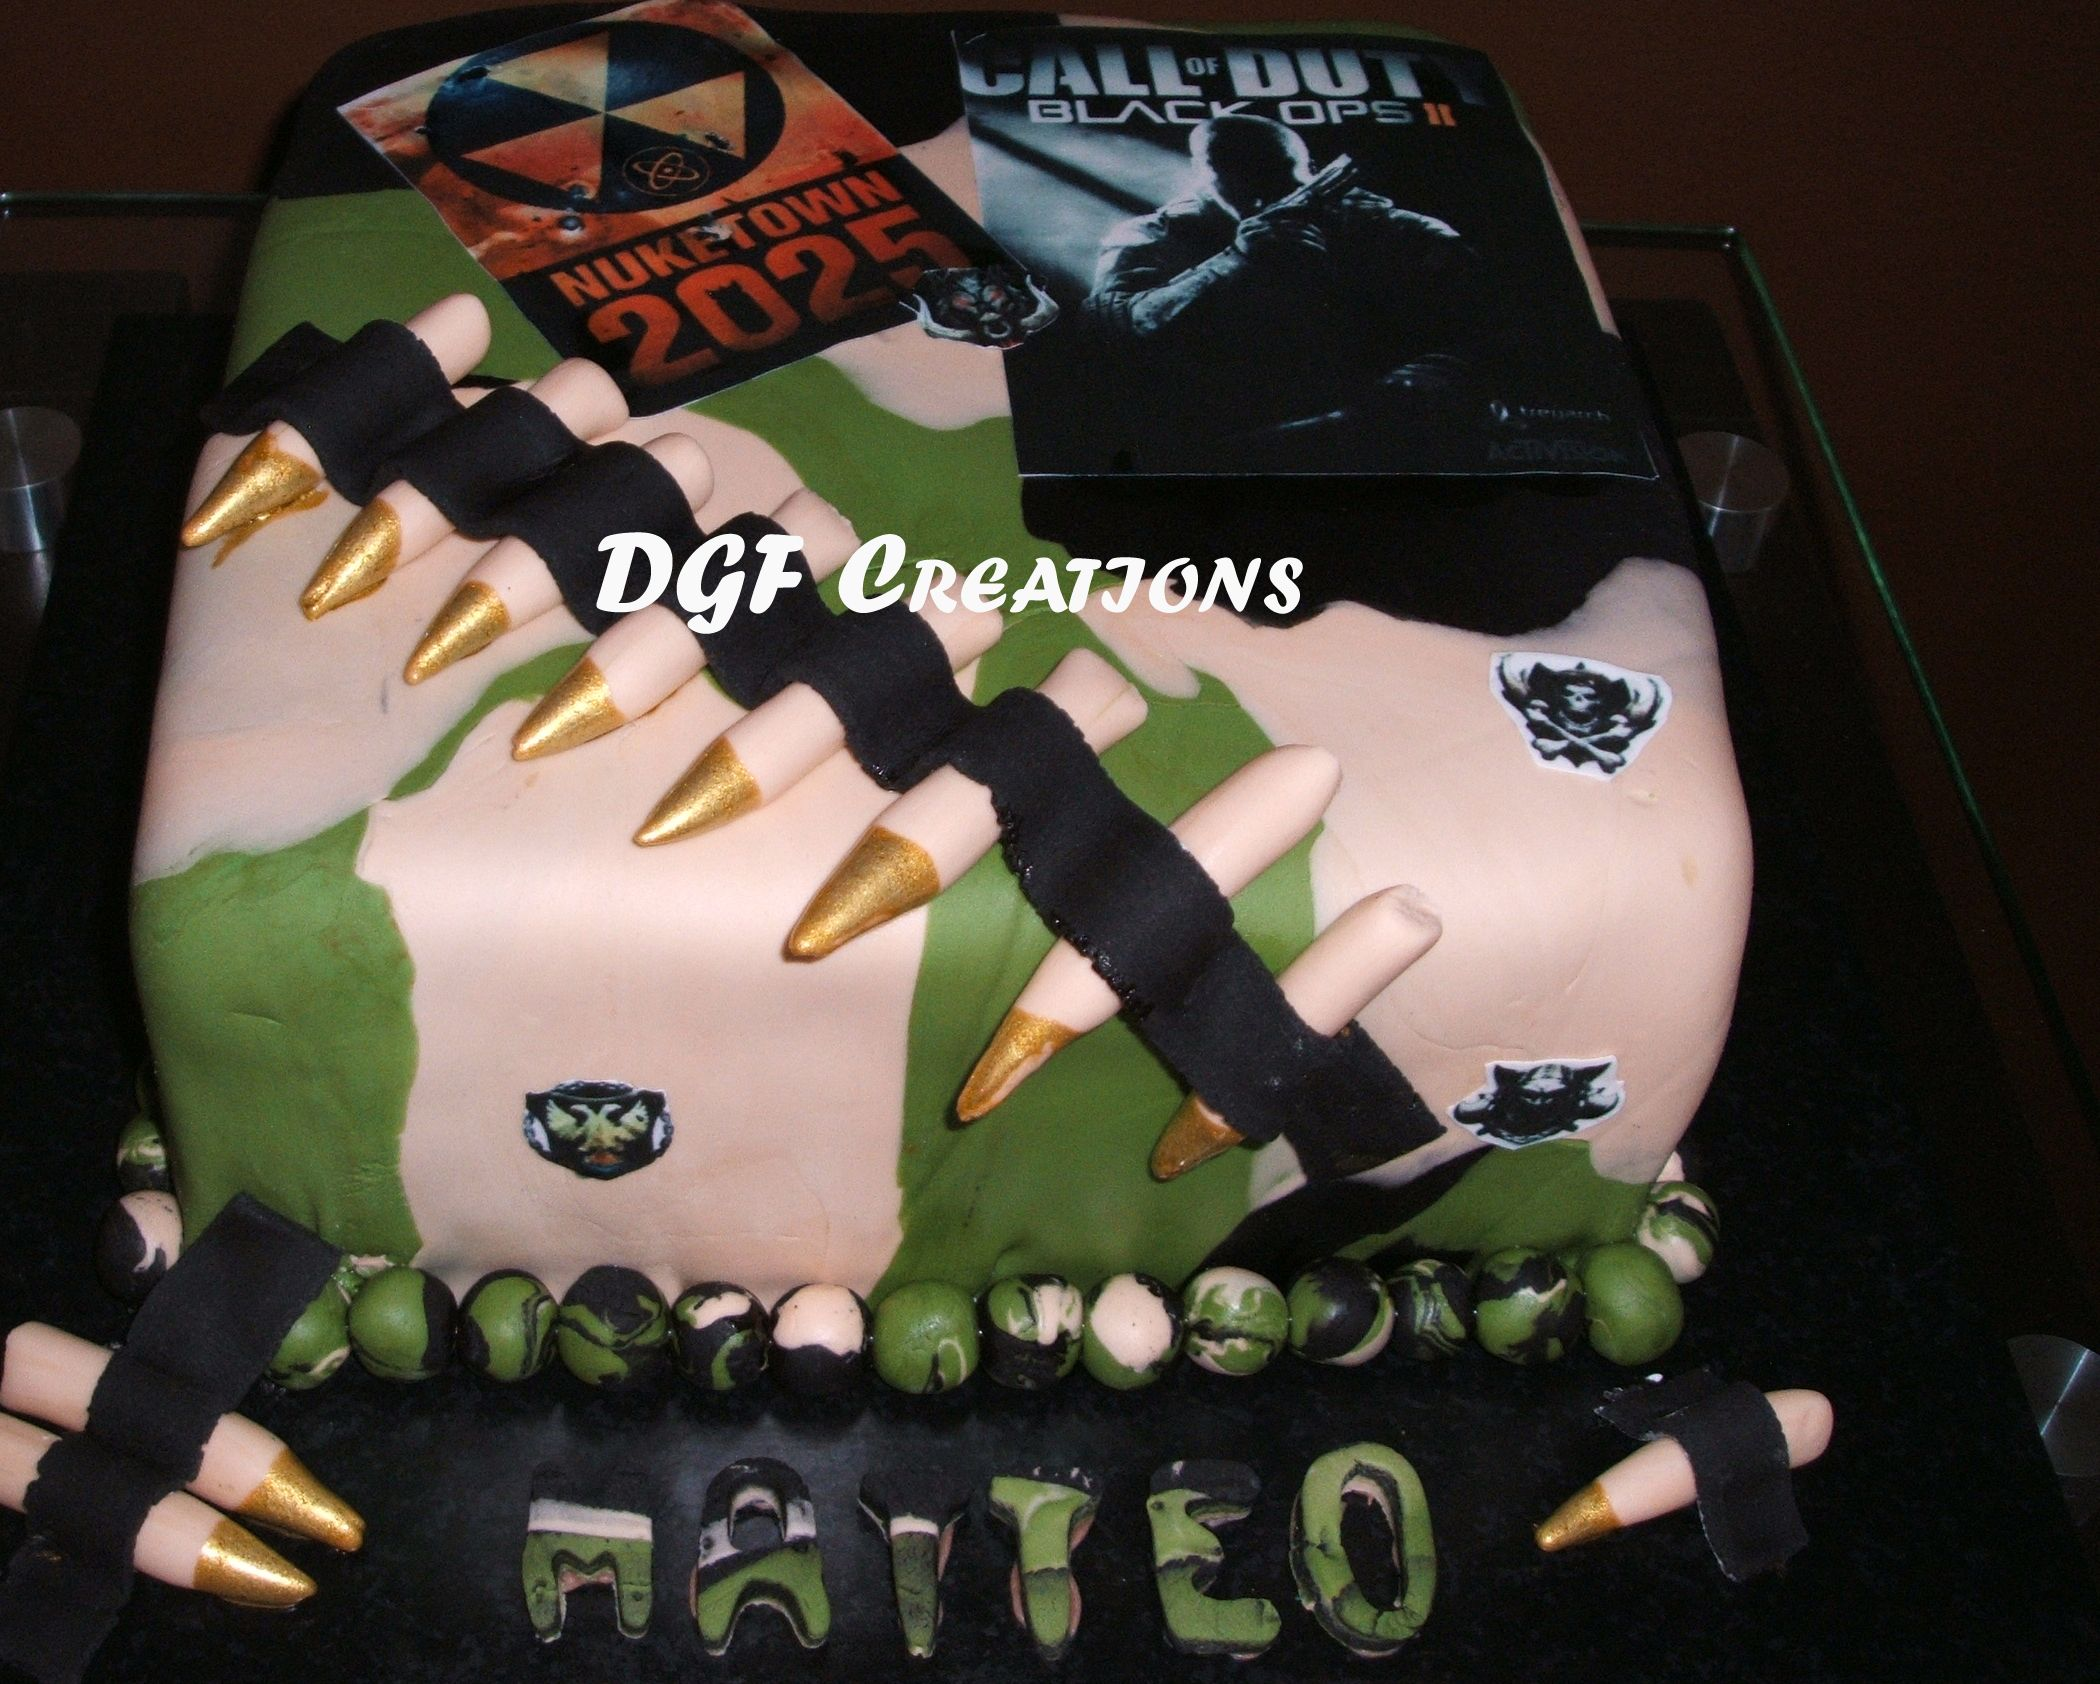 Call of Duty Cake for Boy Birthday with camouflage colored